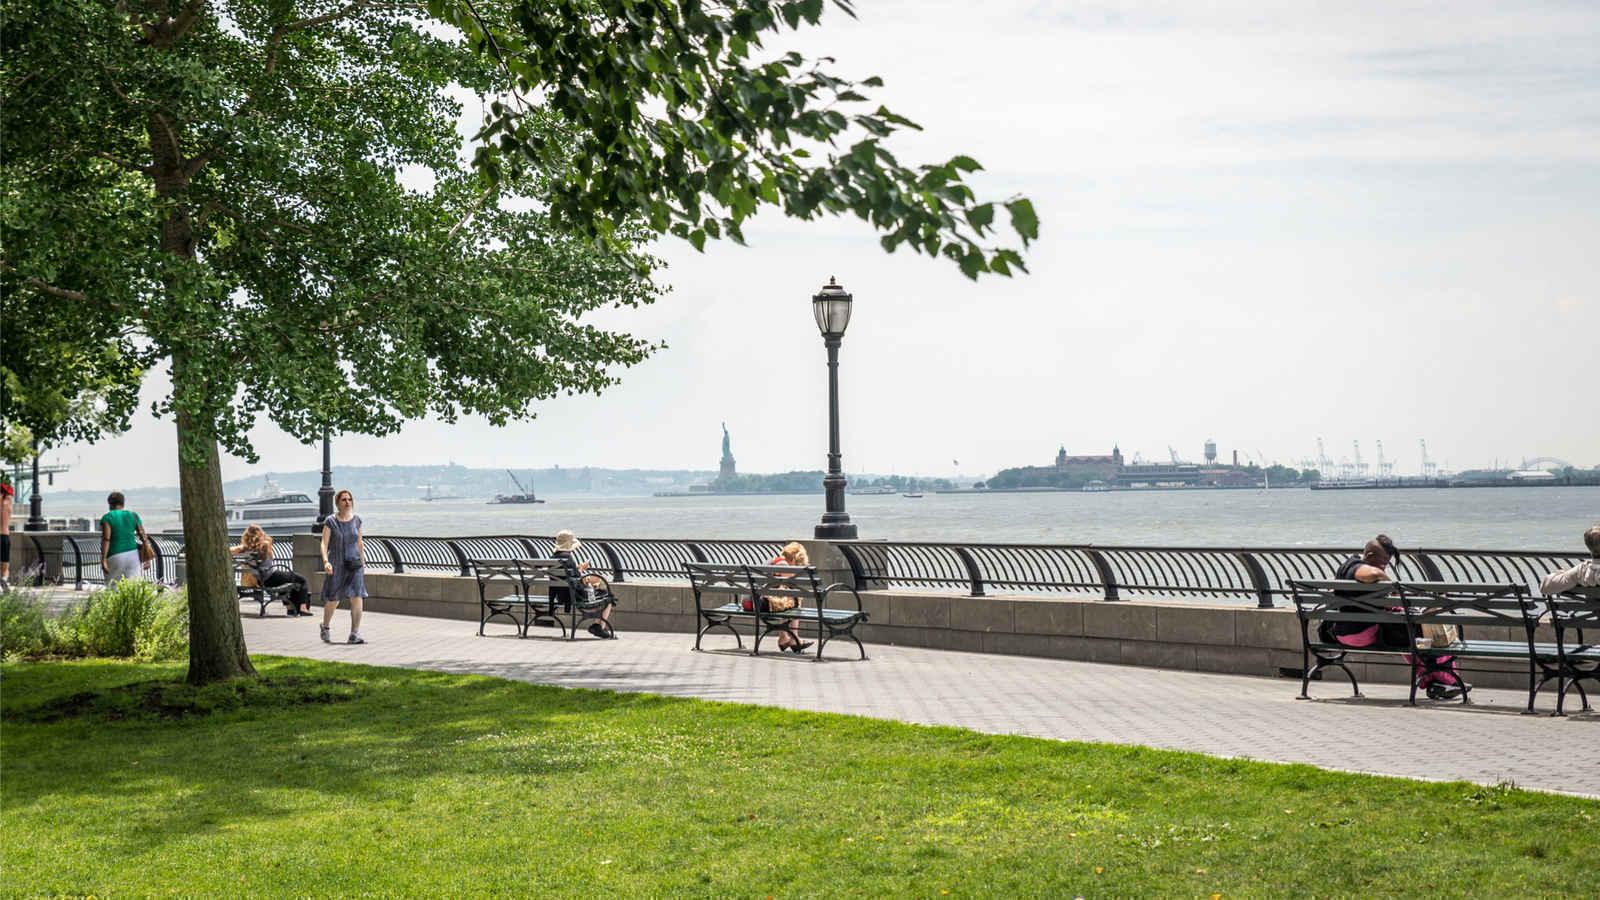 Panorama of Battery Park City Esplanade, New York